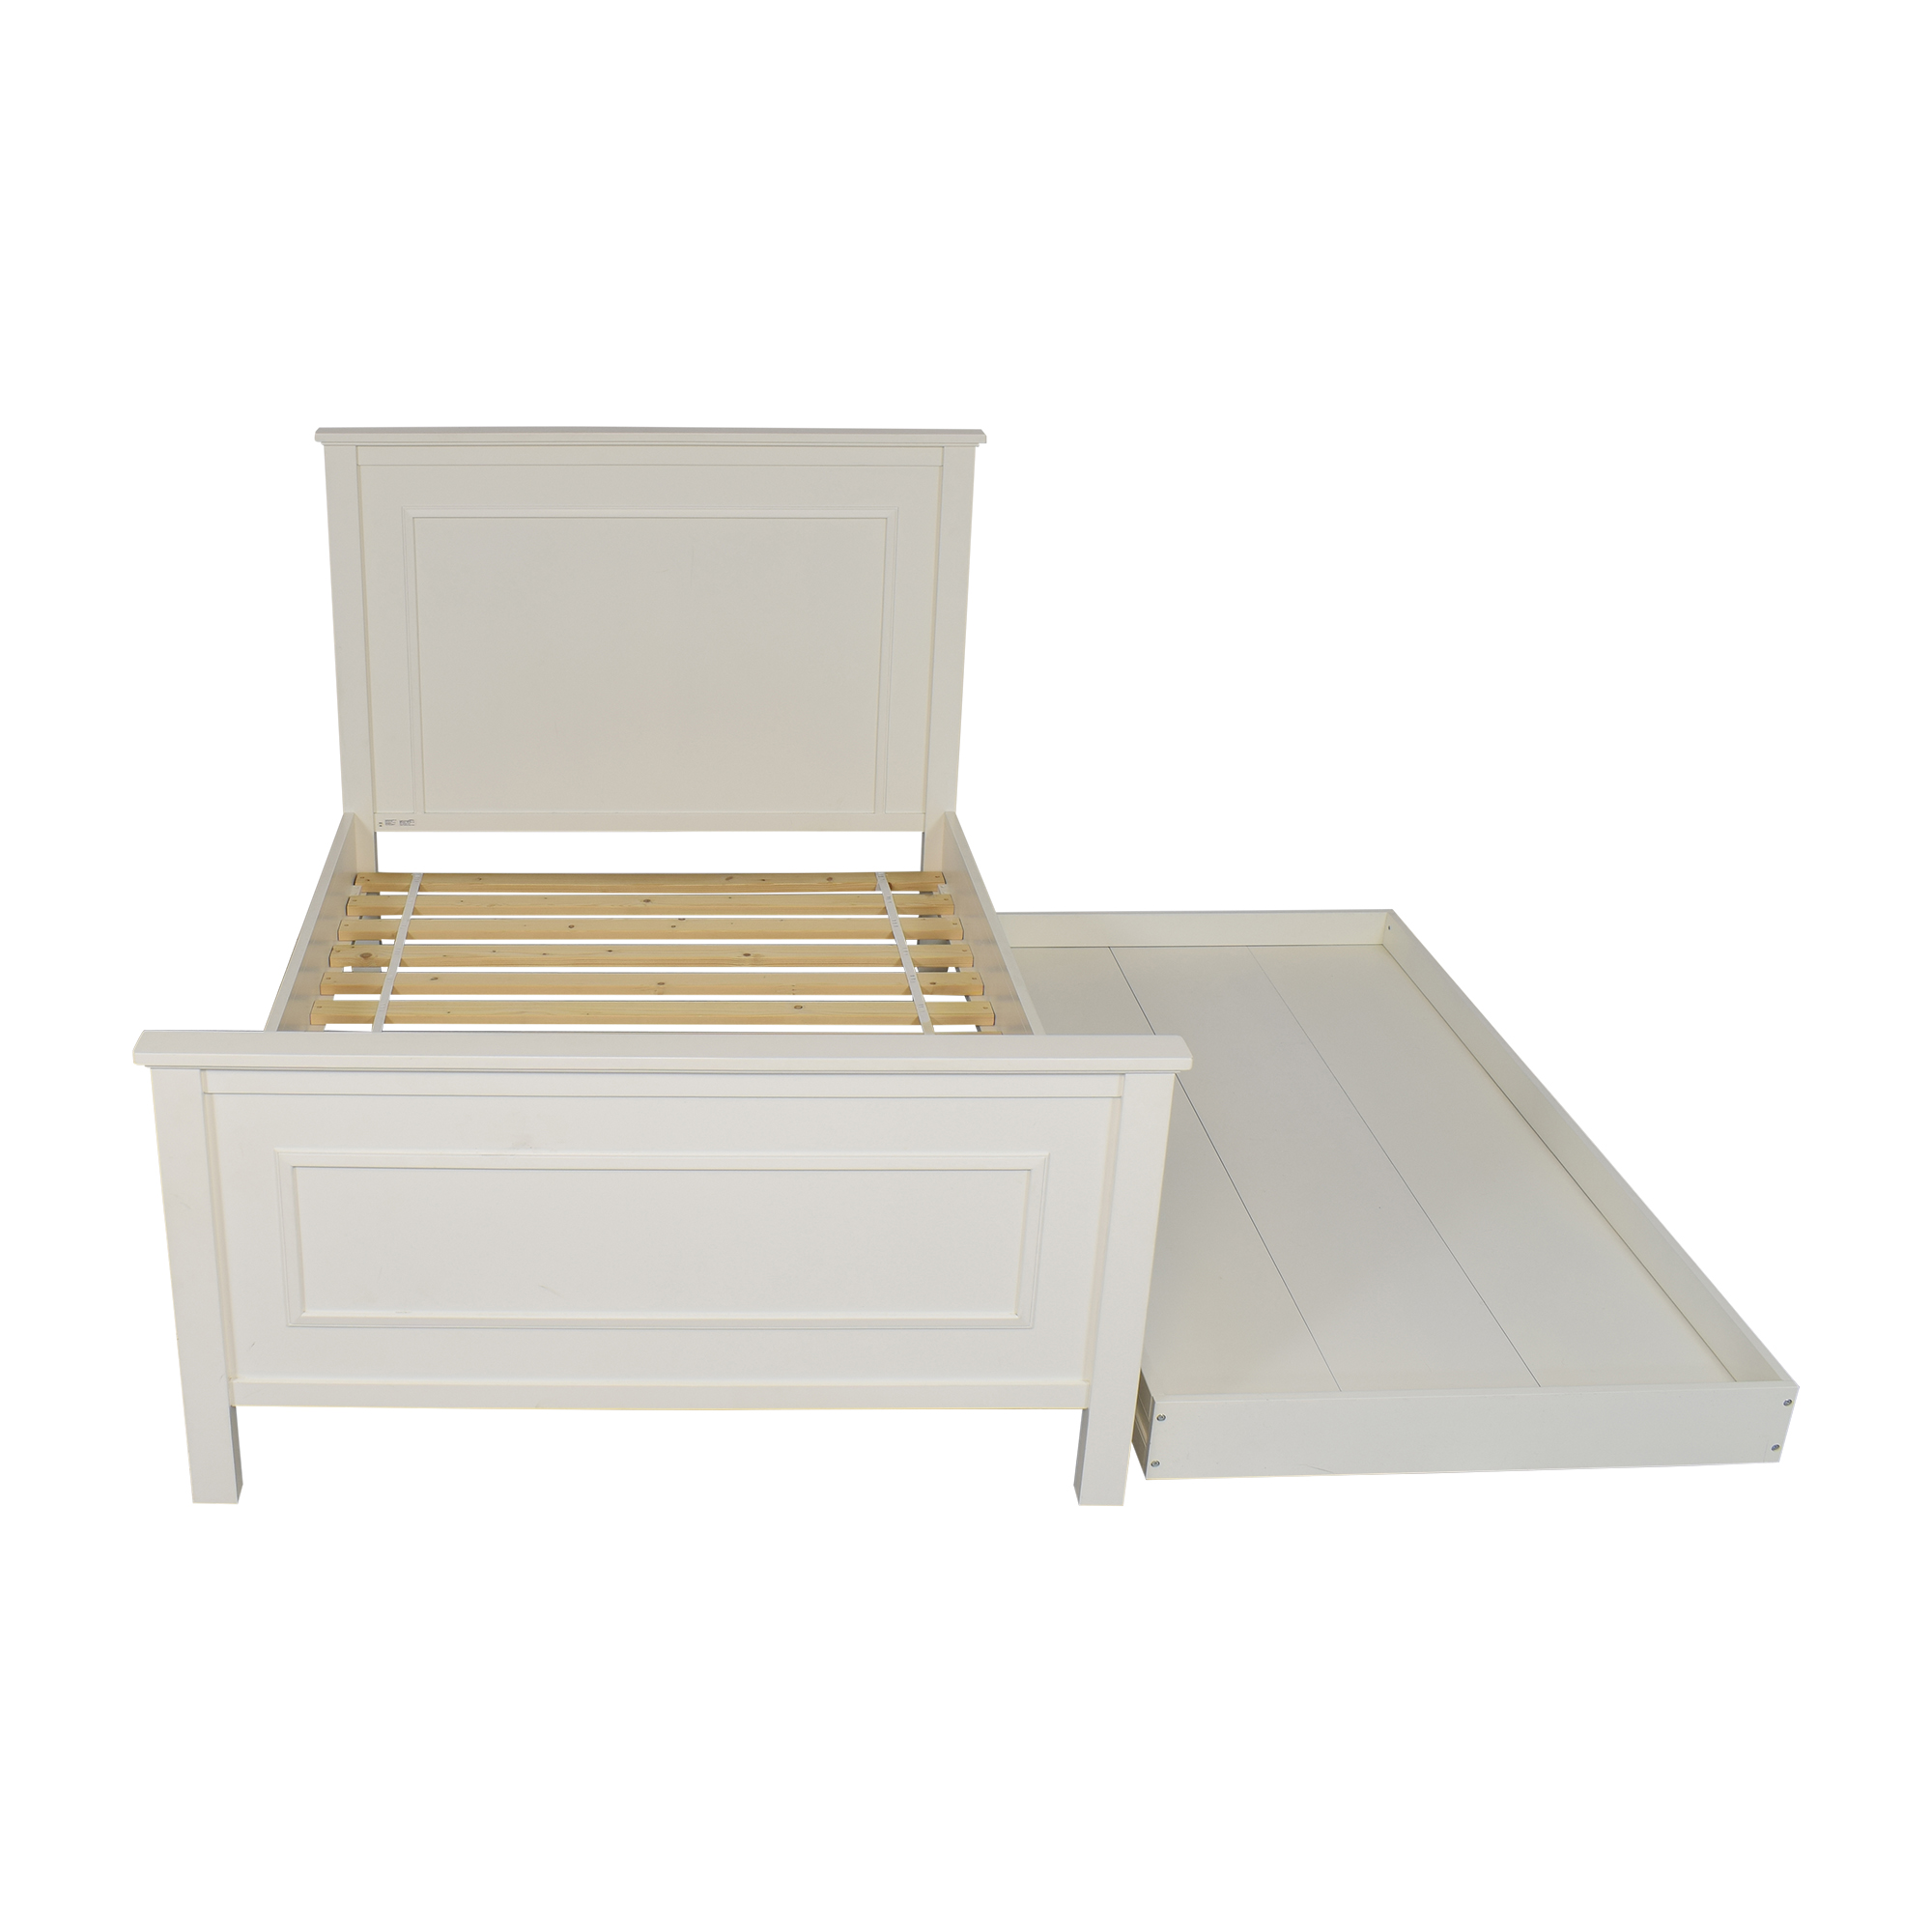 Pottery Barn Kids Fillmore Bed with Trundle / Bed Frames